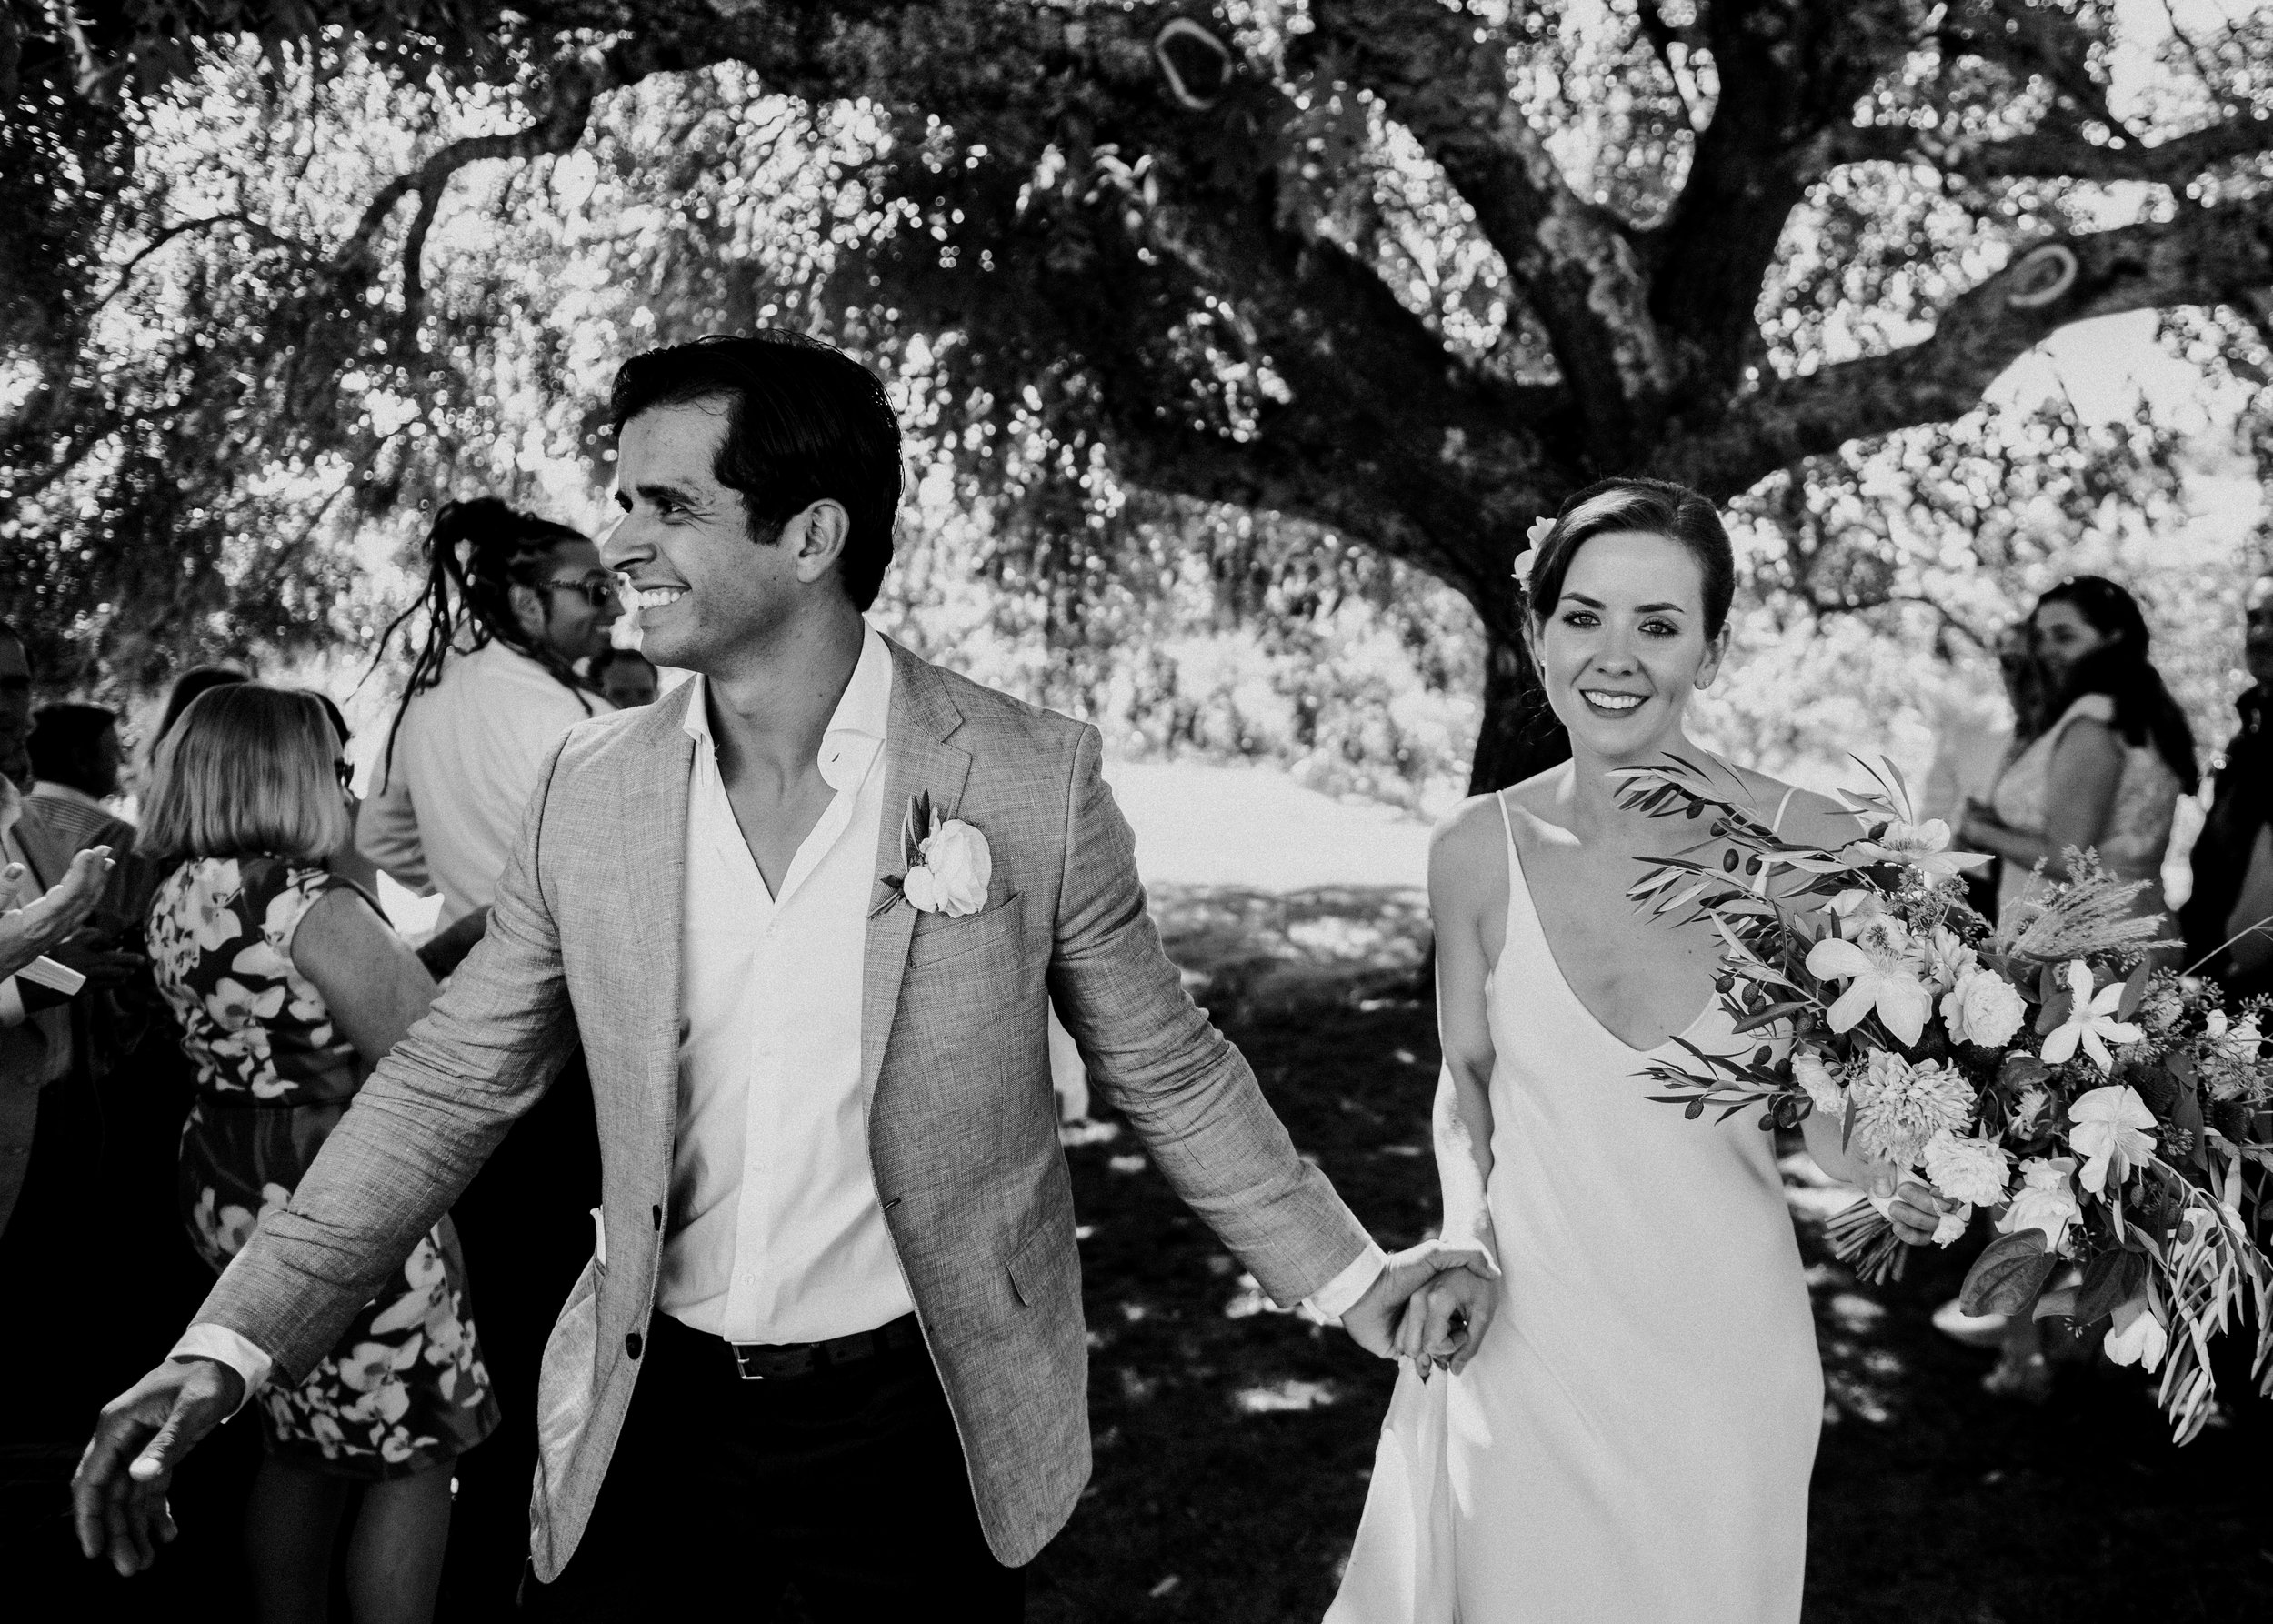 Wedding Collection Two // $3600 - Eight hours of Photography Coverage500+ Edited PhotosOnline gallery with high-resolution images to downloadPersonal Print Release Rights$250 Print Credit